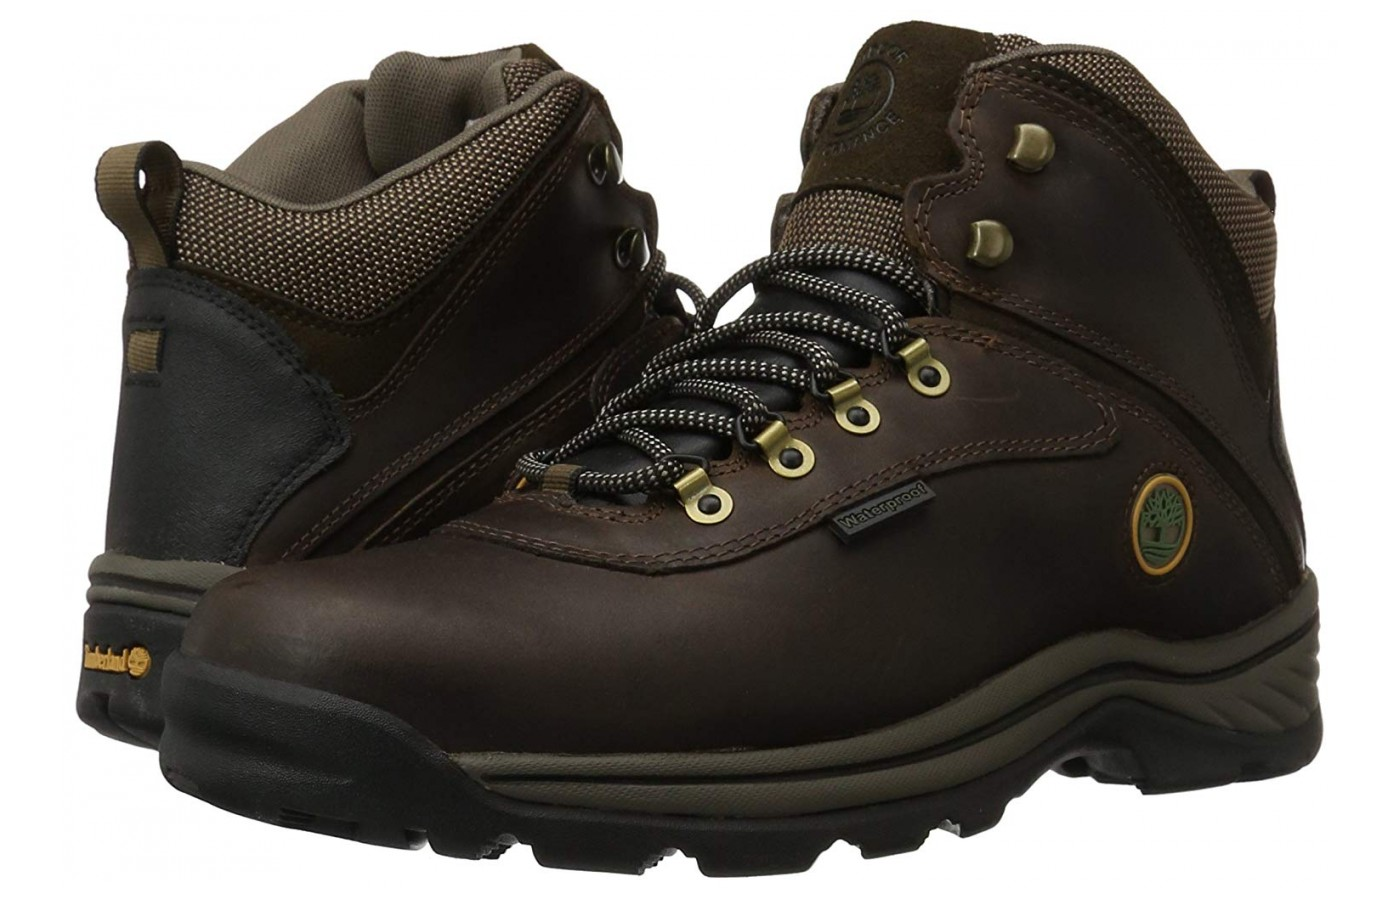 The classic design gives the boot a rugged look without being stiff or bulky